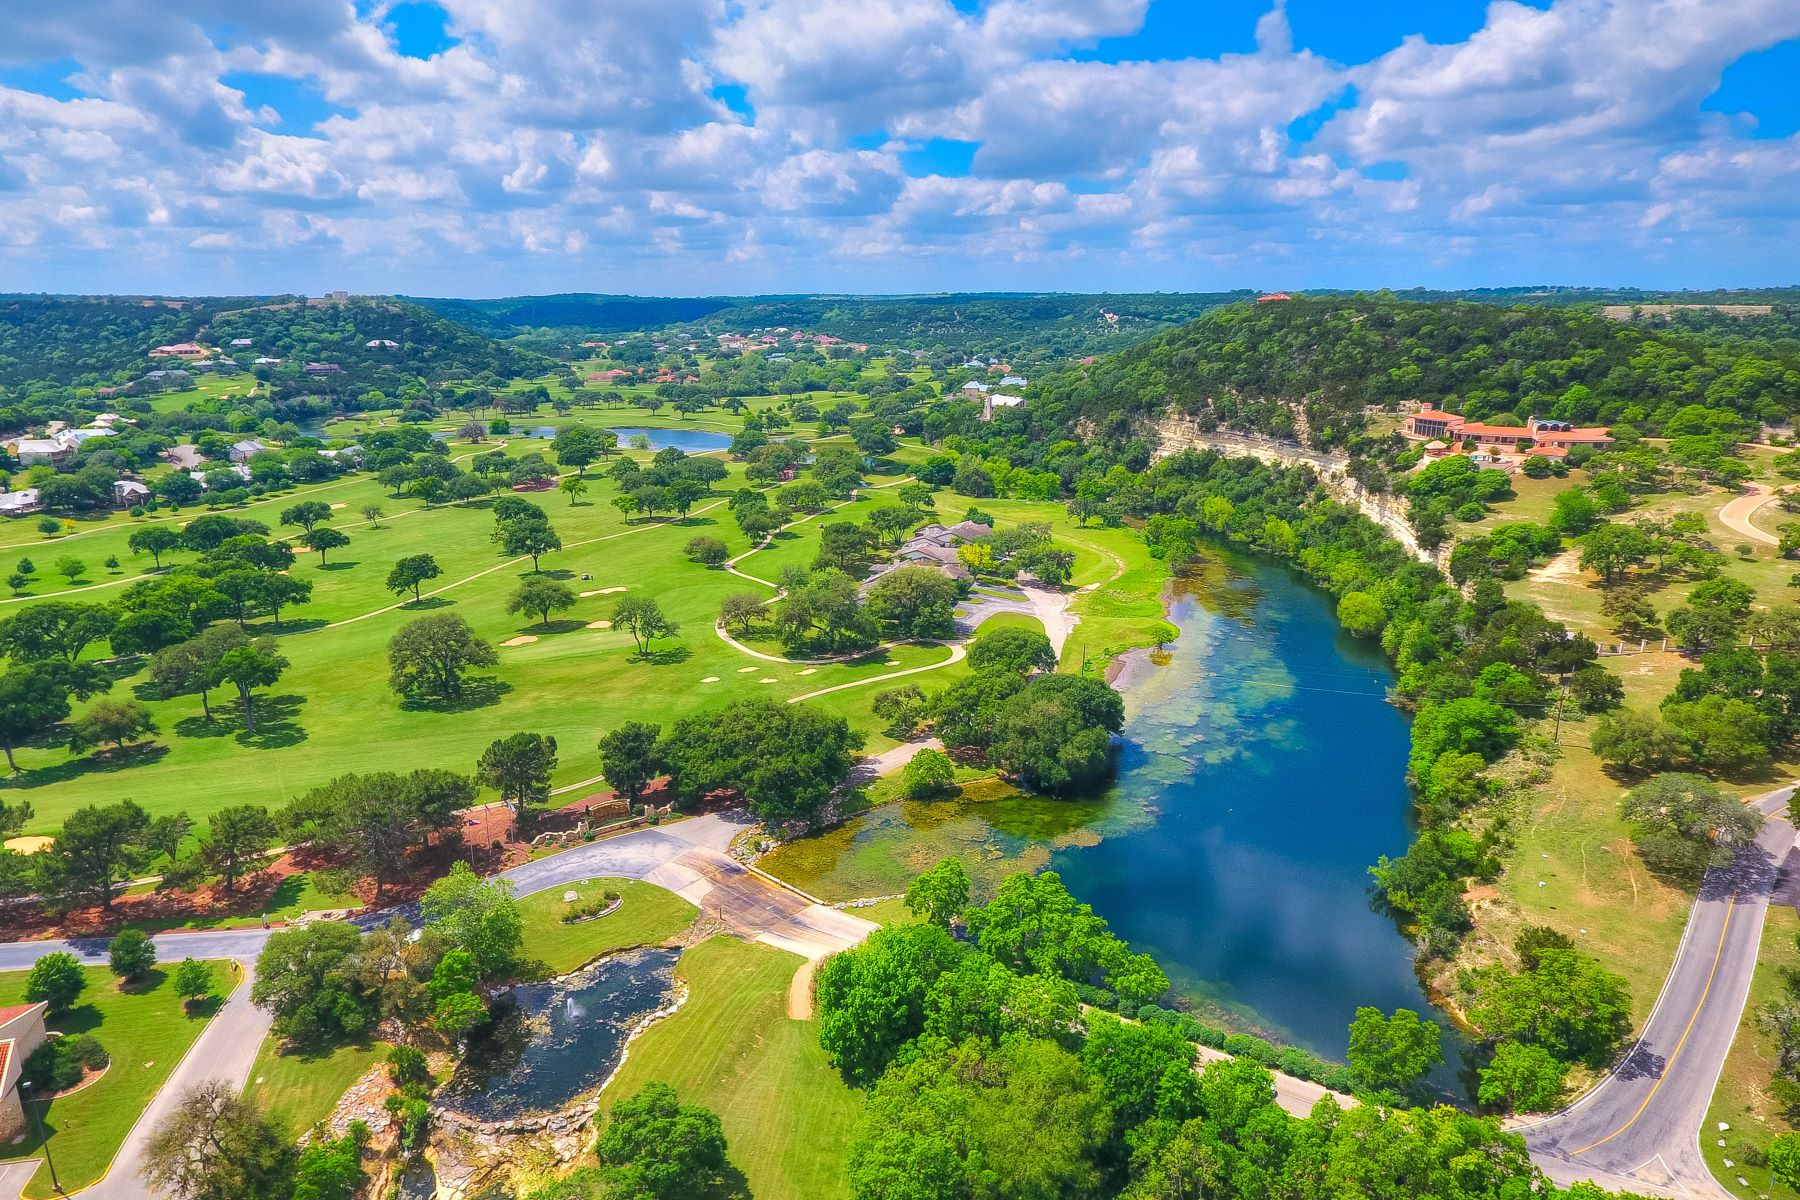 Land for Sale at Hill Country Lot Available Lot 17 Preston Trl Boerne, Texas 78006 United States